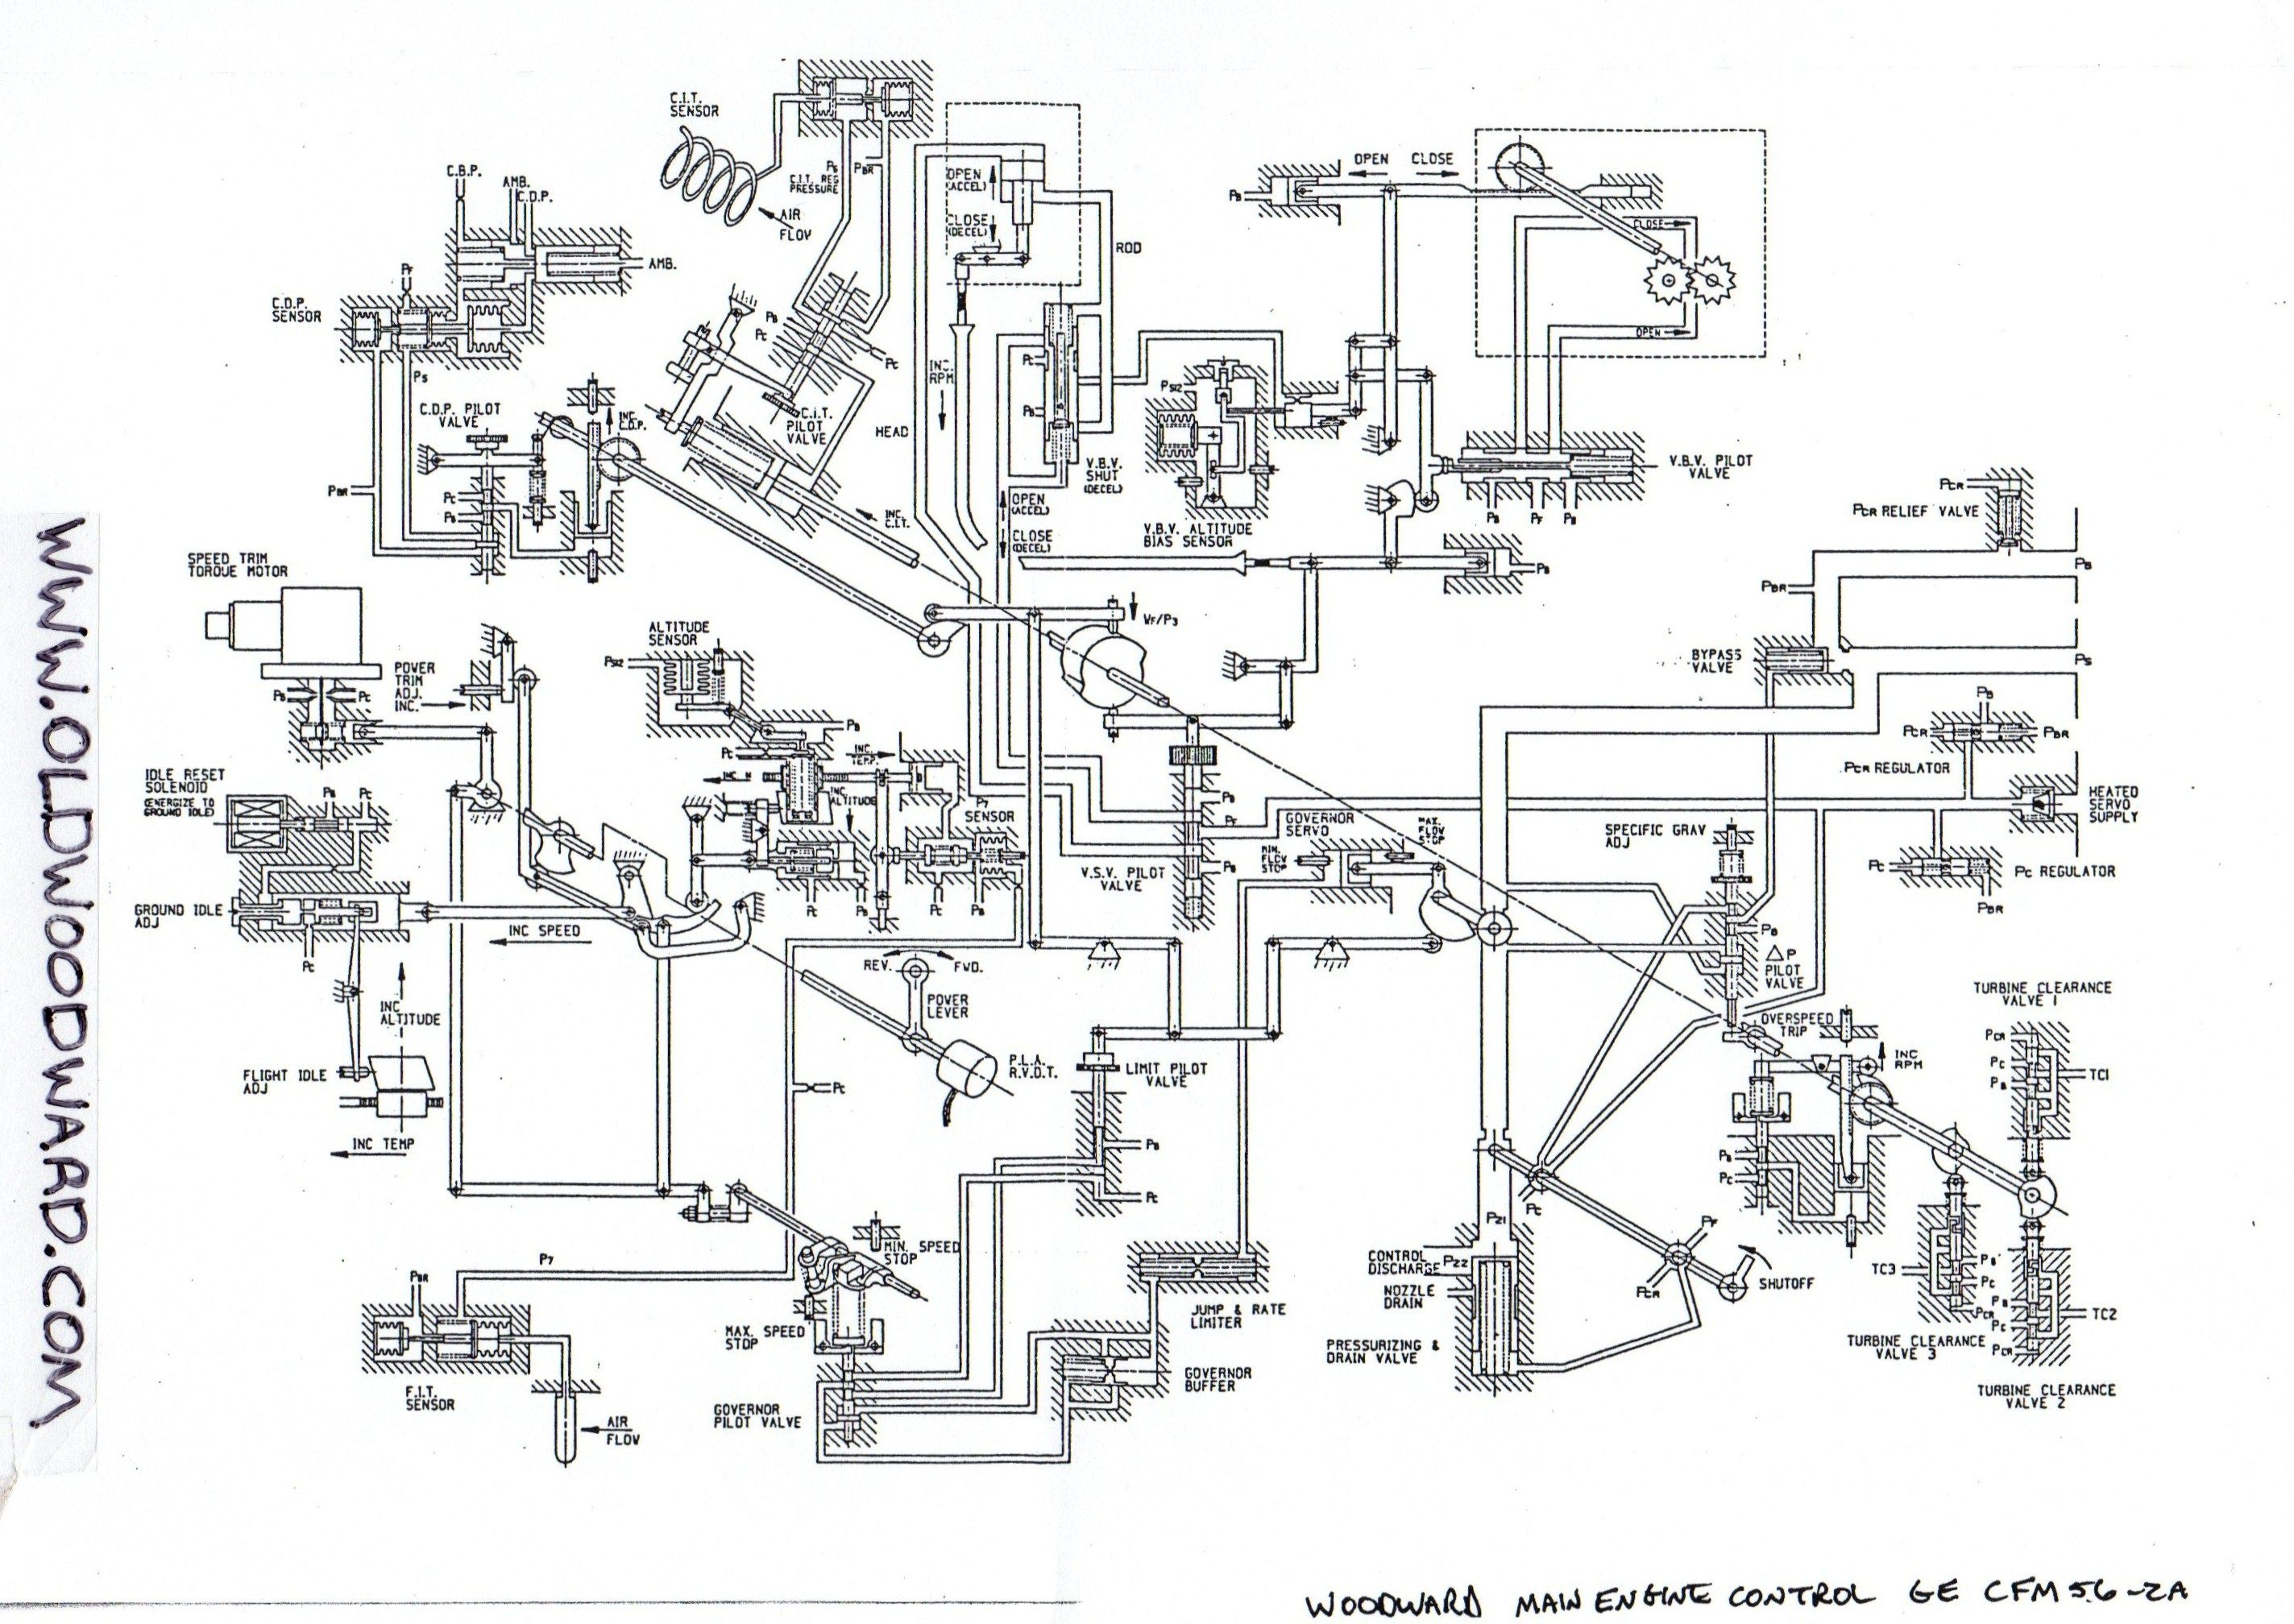 Schematic drawing for the Woodward gas turbine main engine